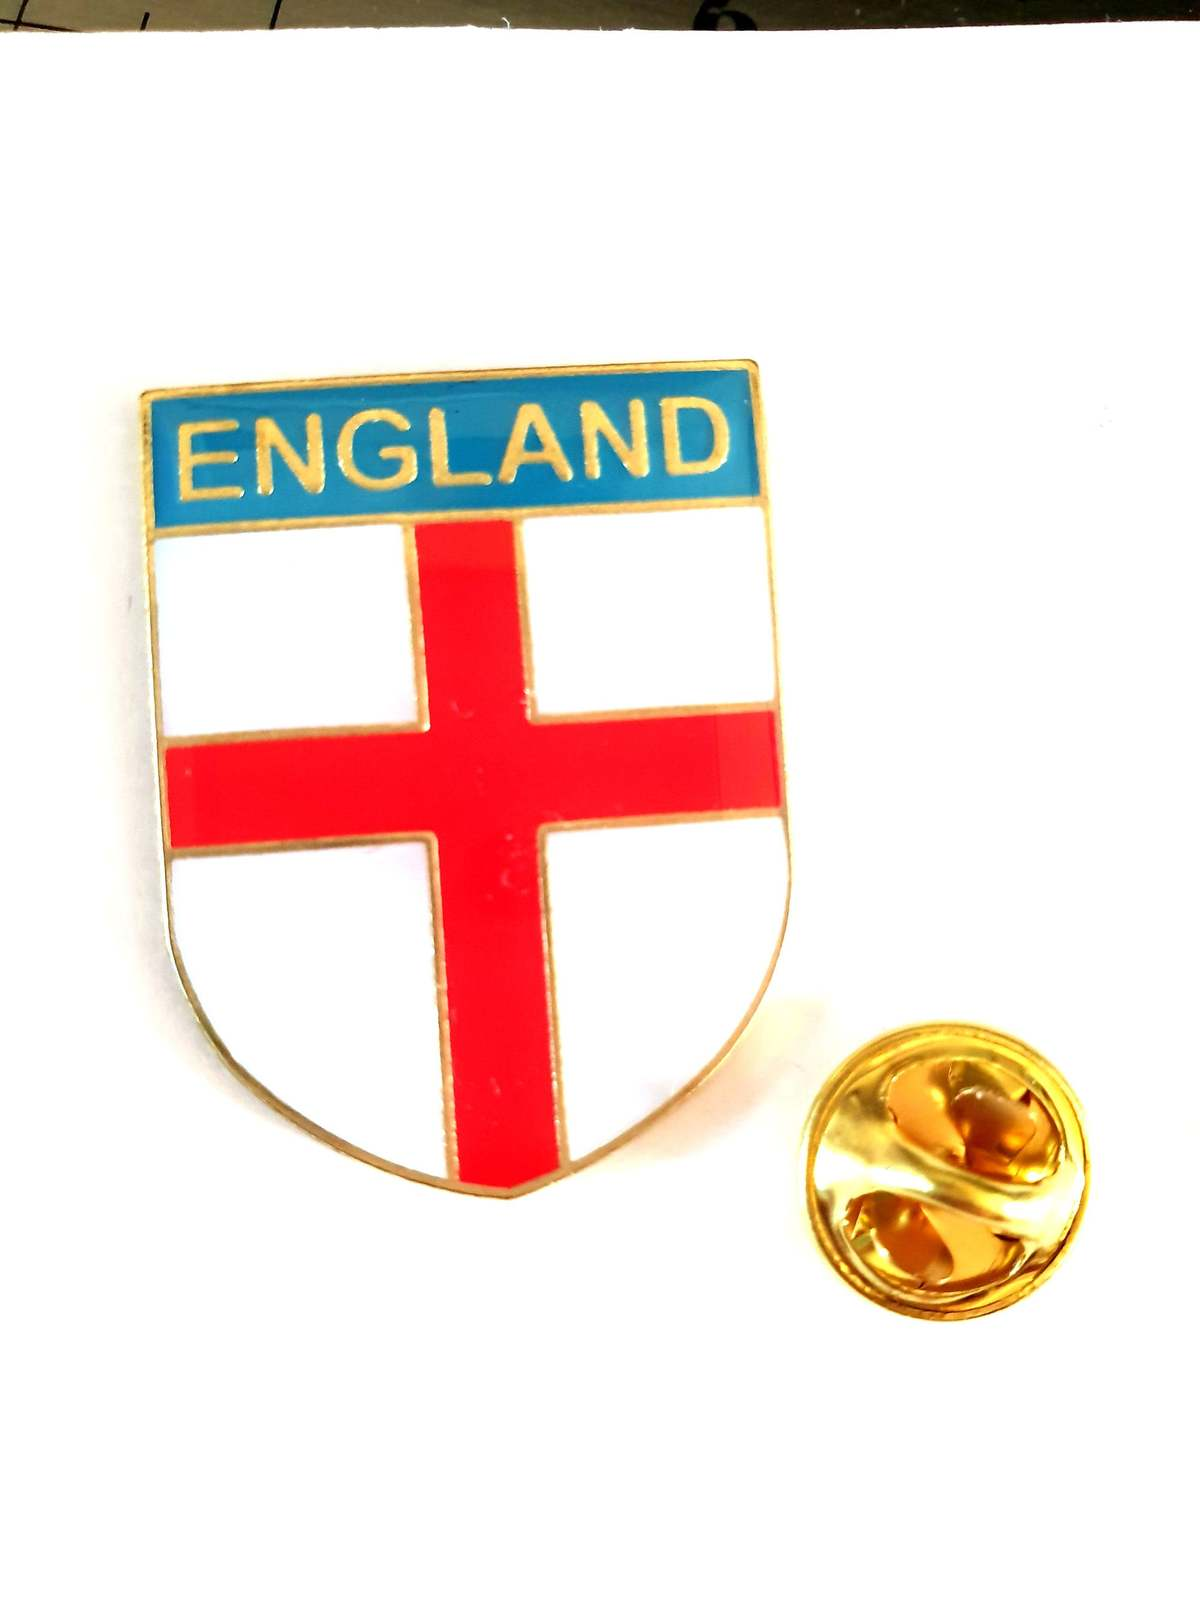 England, English St. George Flag shield Lapel Pin Badge / tie pin. in gift box